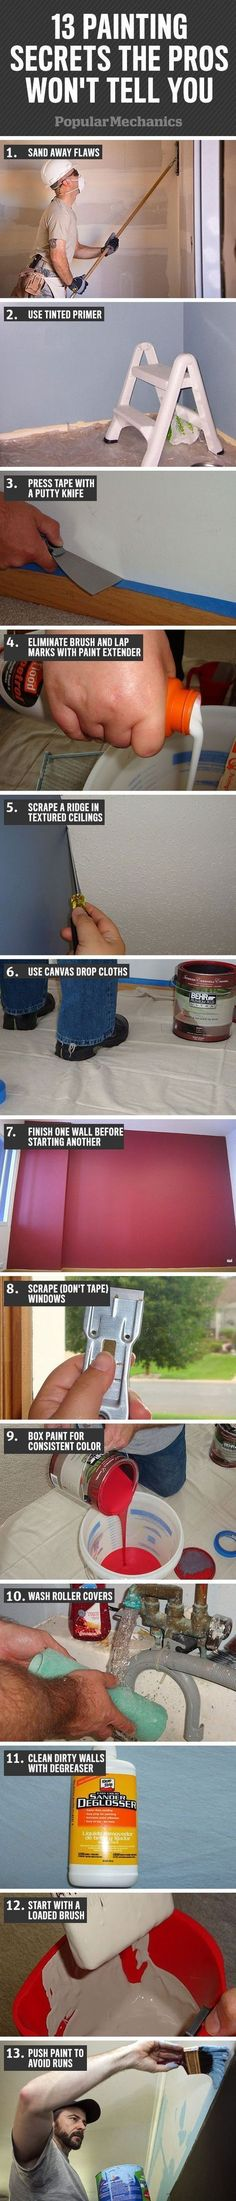 Painting Secrets the Pros Won't Tell You Each painter has slightly different methods and preferences, but the pros all know the trade secrets.Each painter has slightly different methods and preferences, but the pros all know the trade secrets. Home Improvement Projects, Home Projects, Home Renovation, Home Remodeling, Home Repairs, Do It Yourself Home, Home Hacks, Home Tips, Hacks Diy